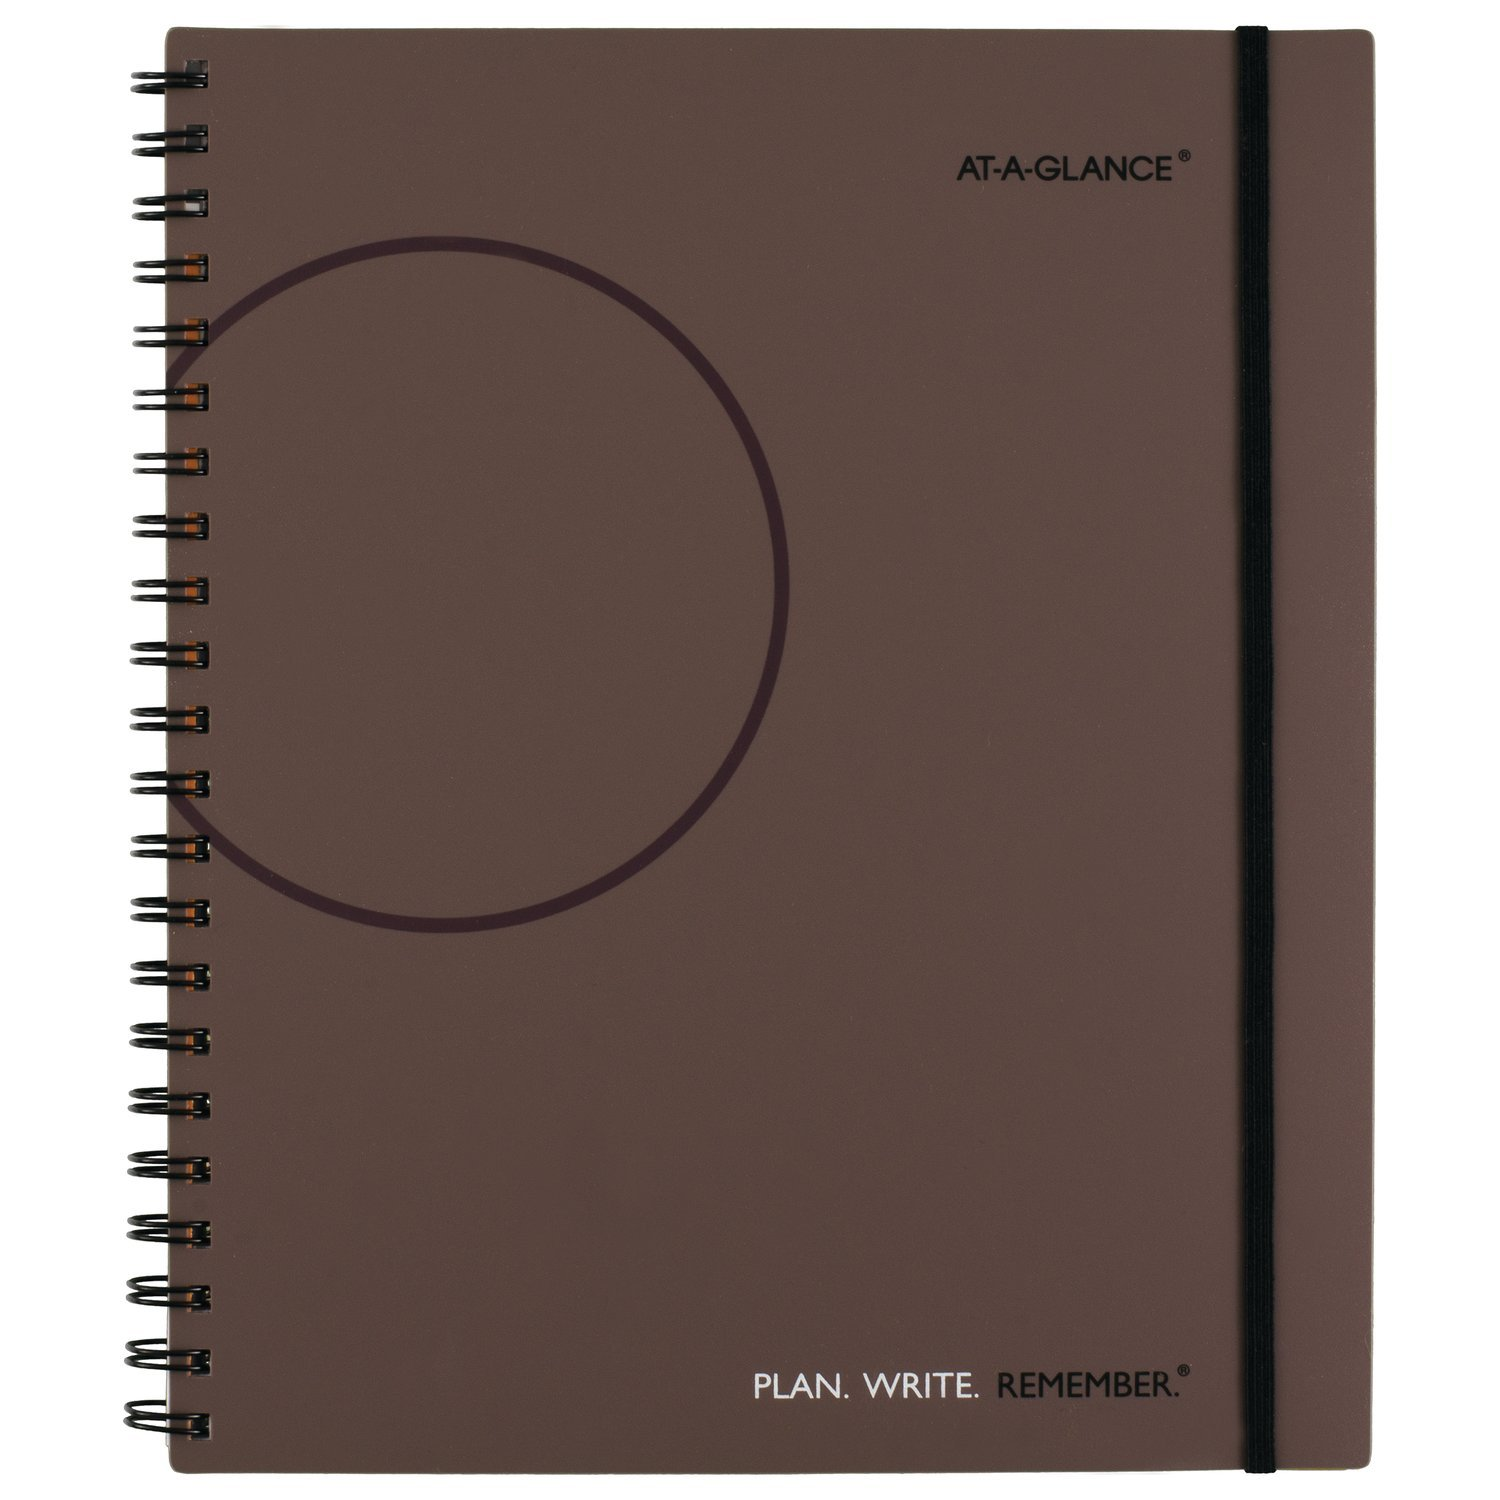 AT-A-GLANCE Planning Notebook with Reference Calendars, Plan.Write.Remember.,  8-1/2'' x 11'', Medium, Undated, Gray (70620930)